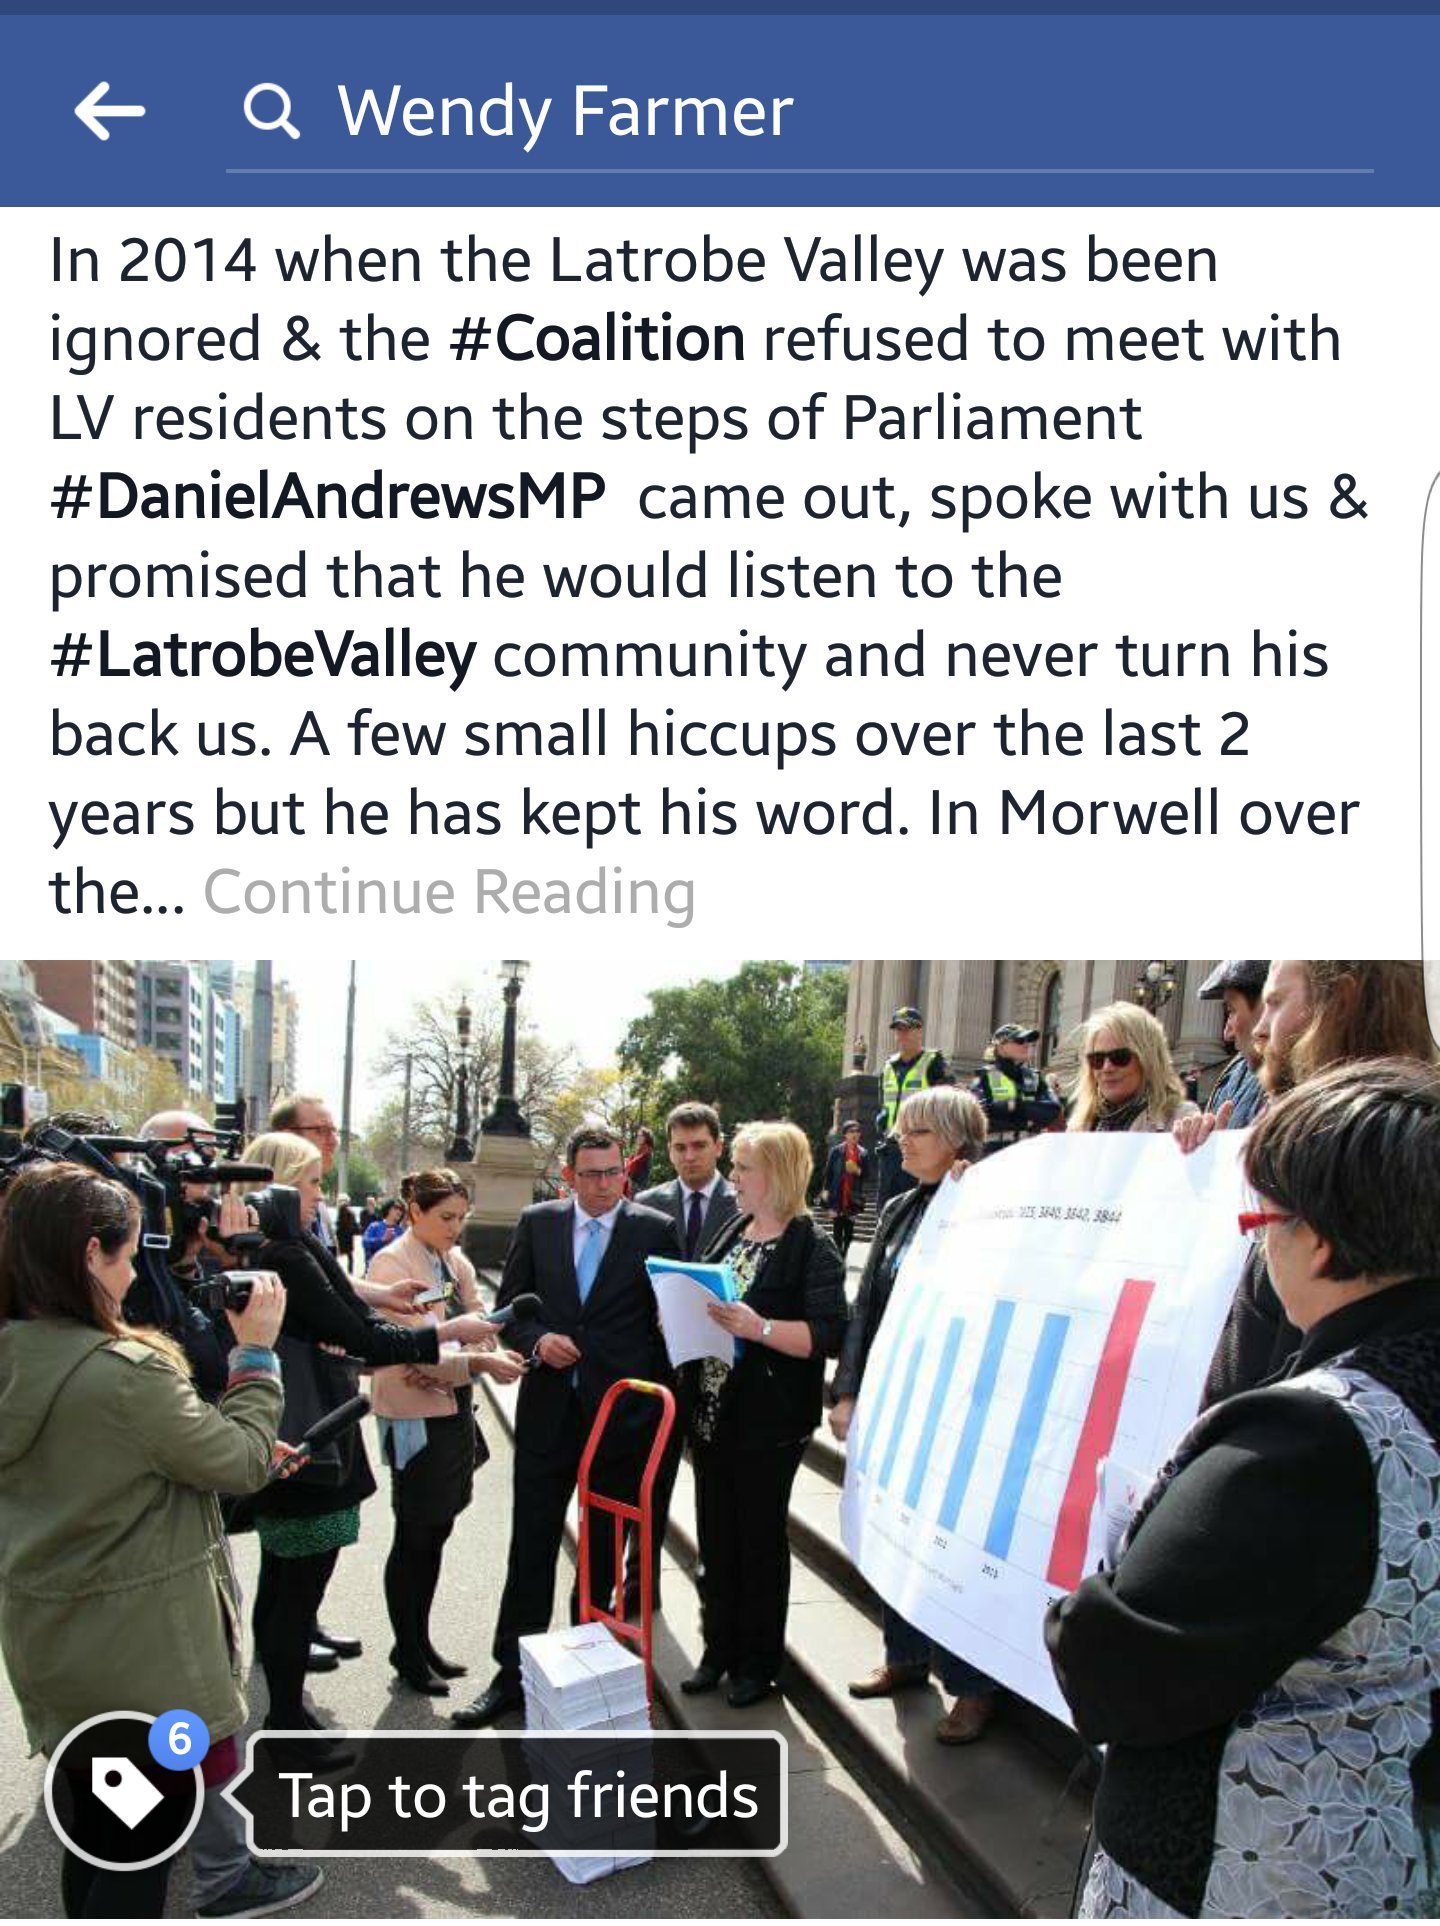 .@DanielAndrewsMP keeping his promise to #LatrobeValley #LVTransition #springst #auspol We need #Coalition to stand up, STOP the blame game. https://t.co/2QZ5EF1wqp